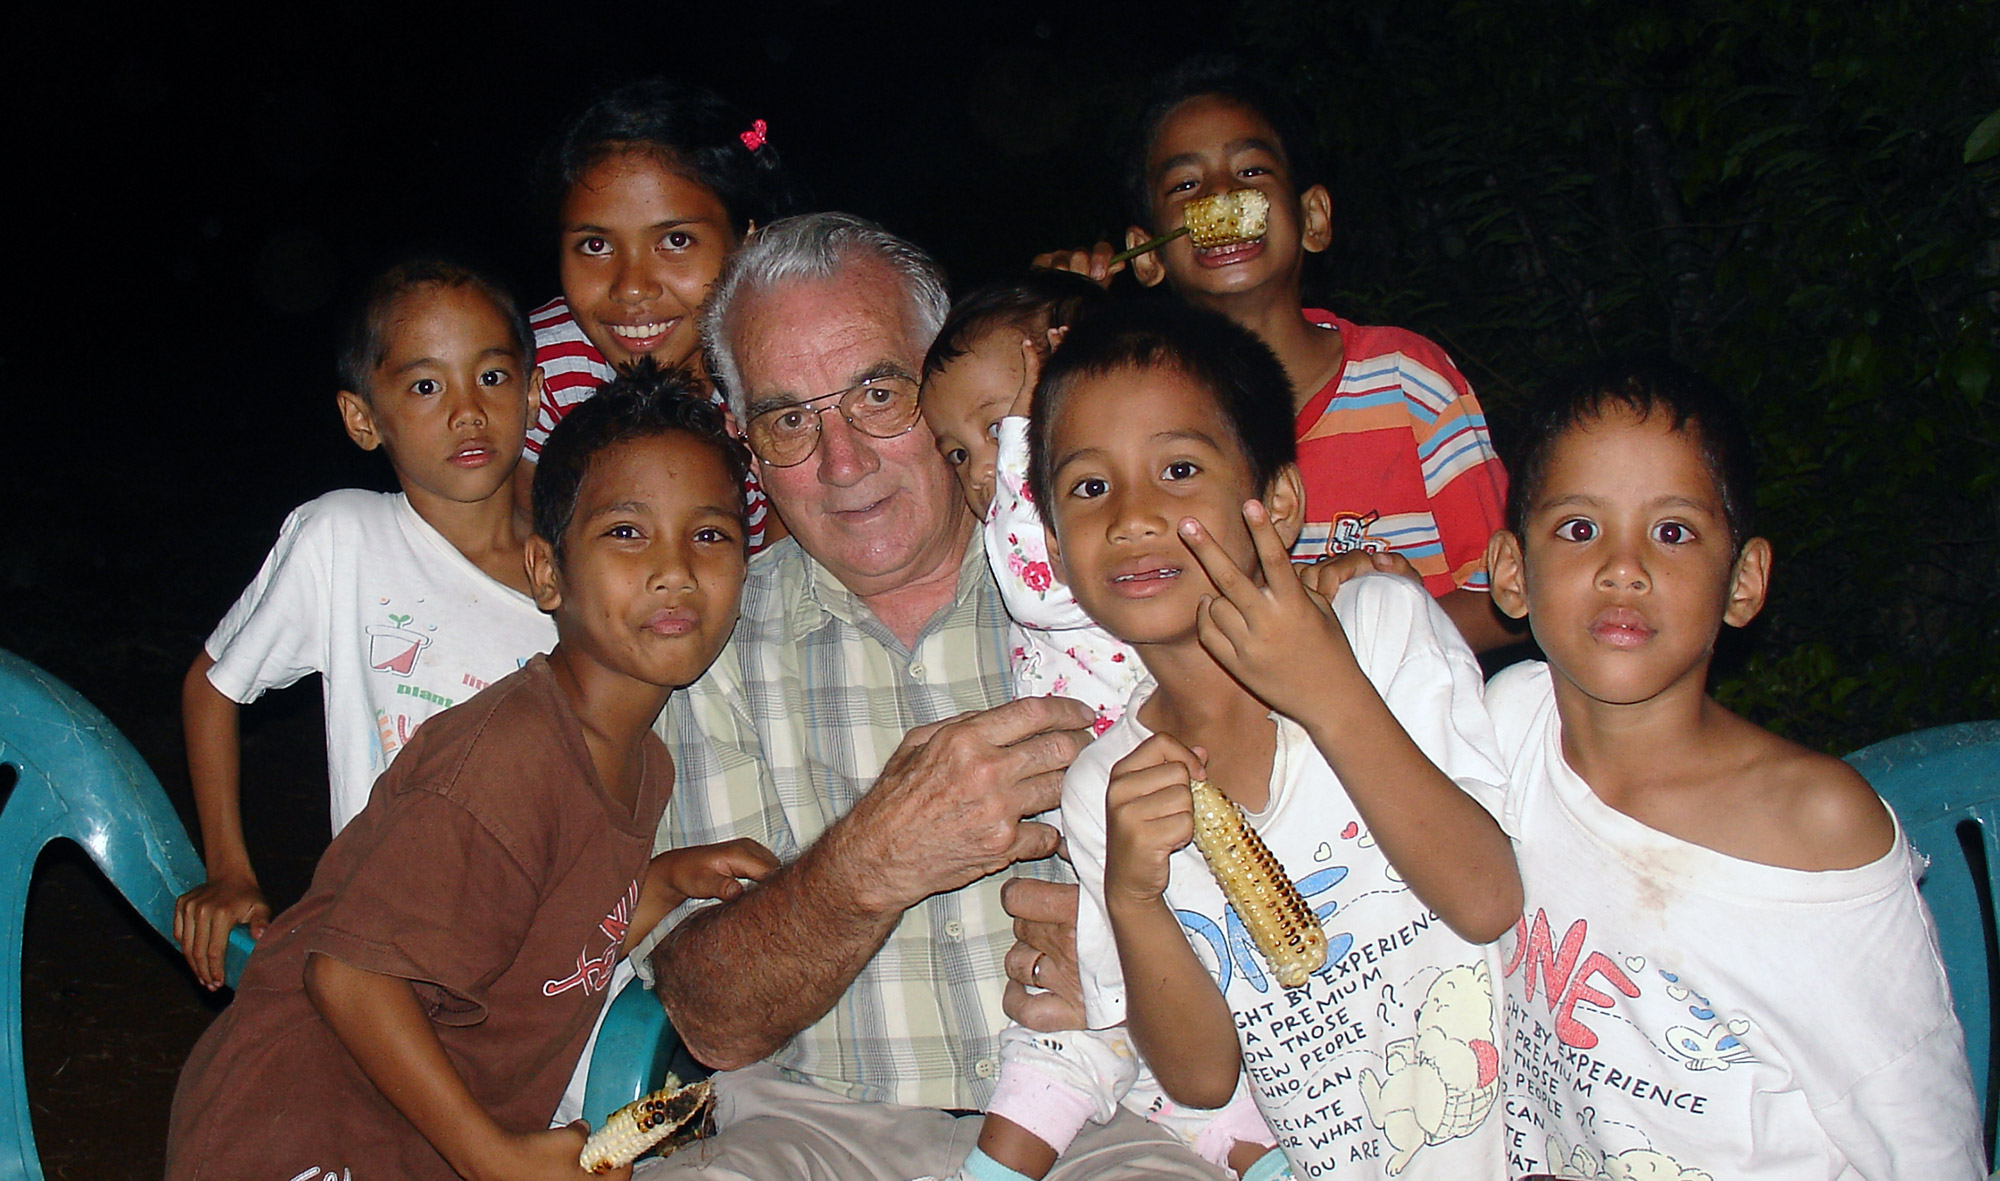 Bill Sommer with the children.